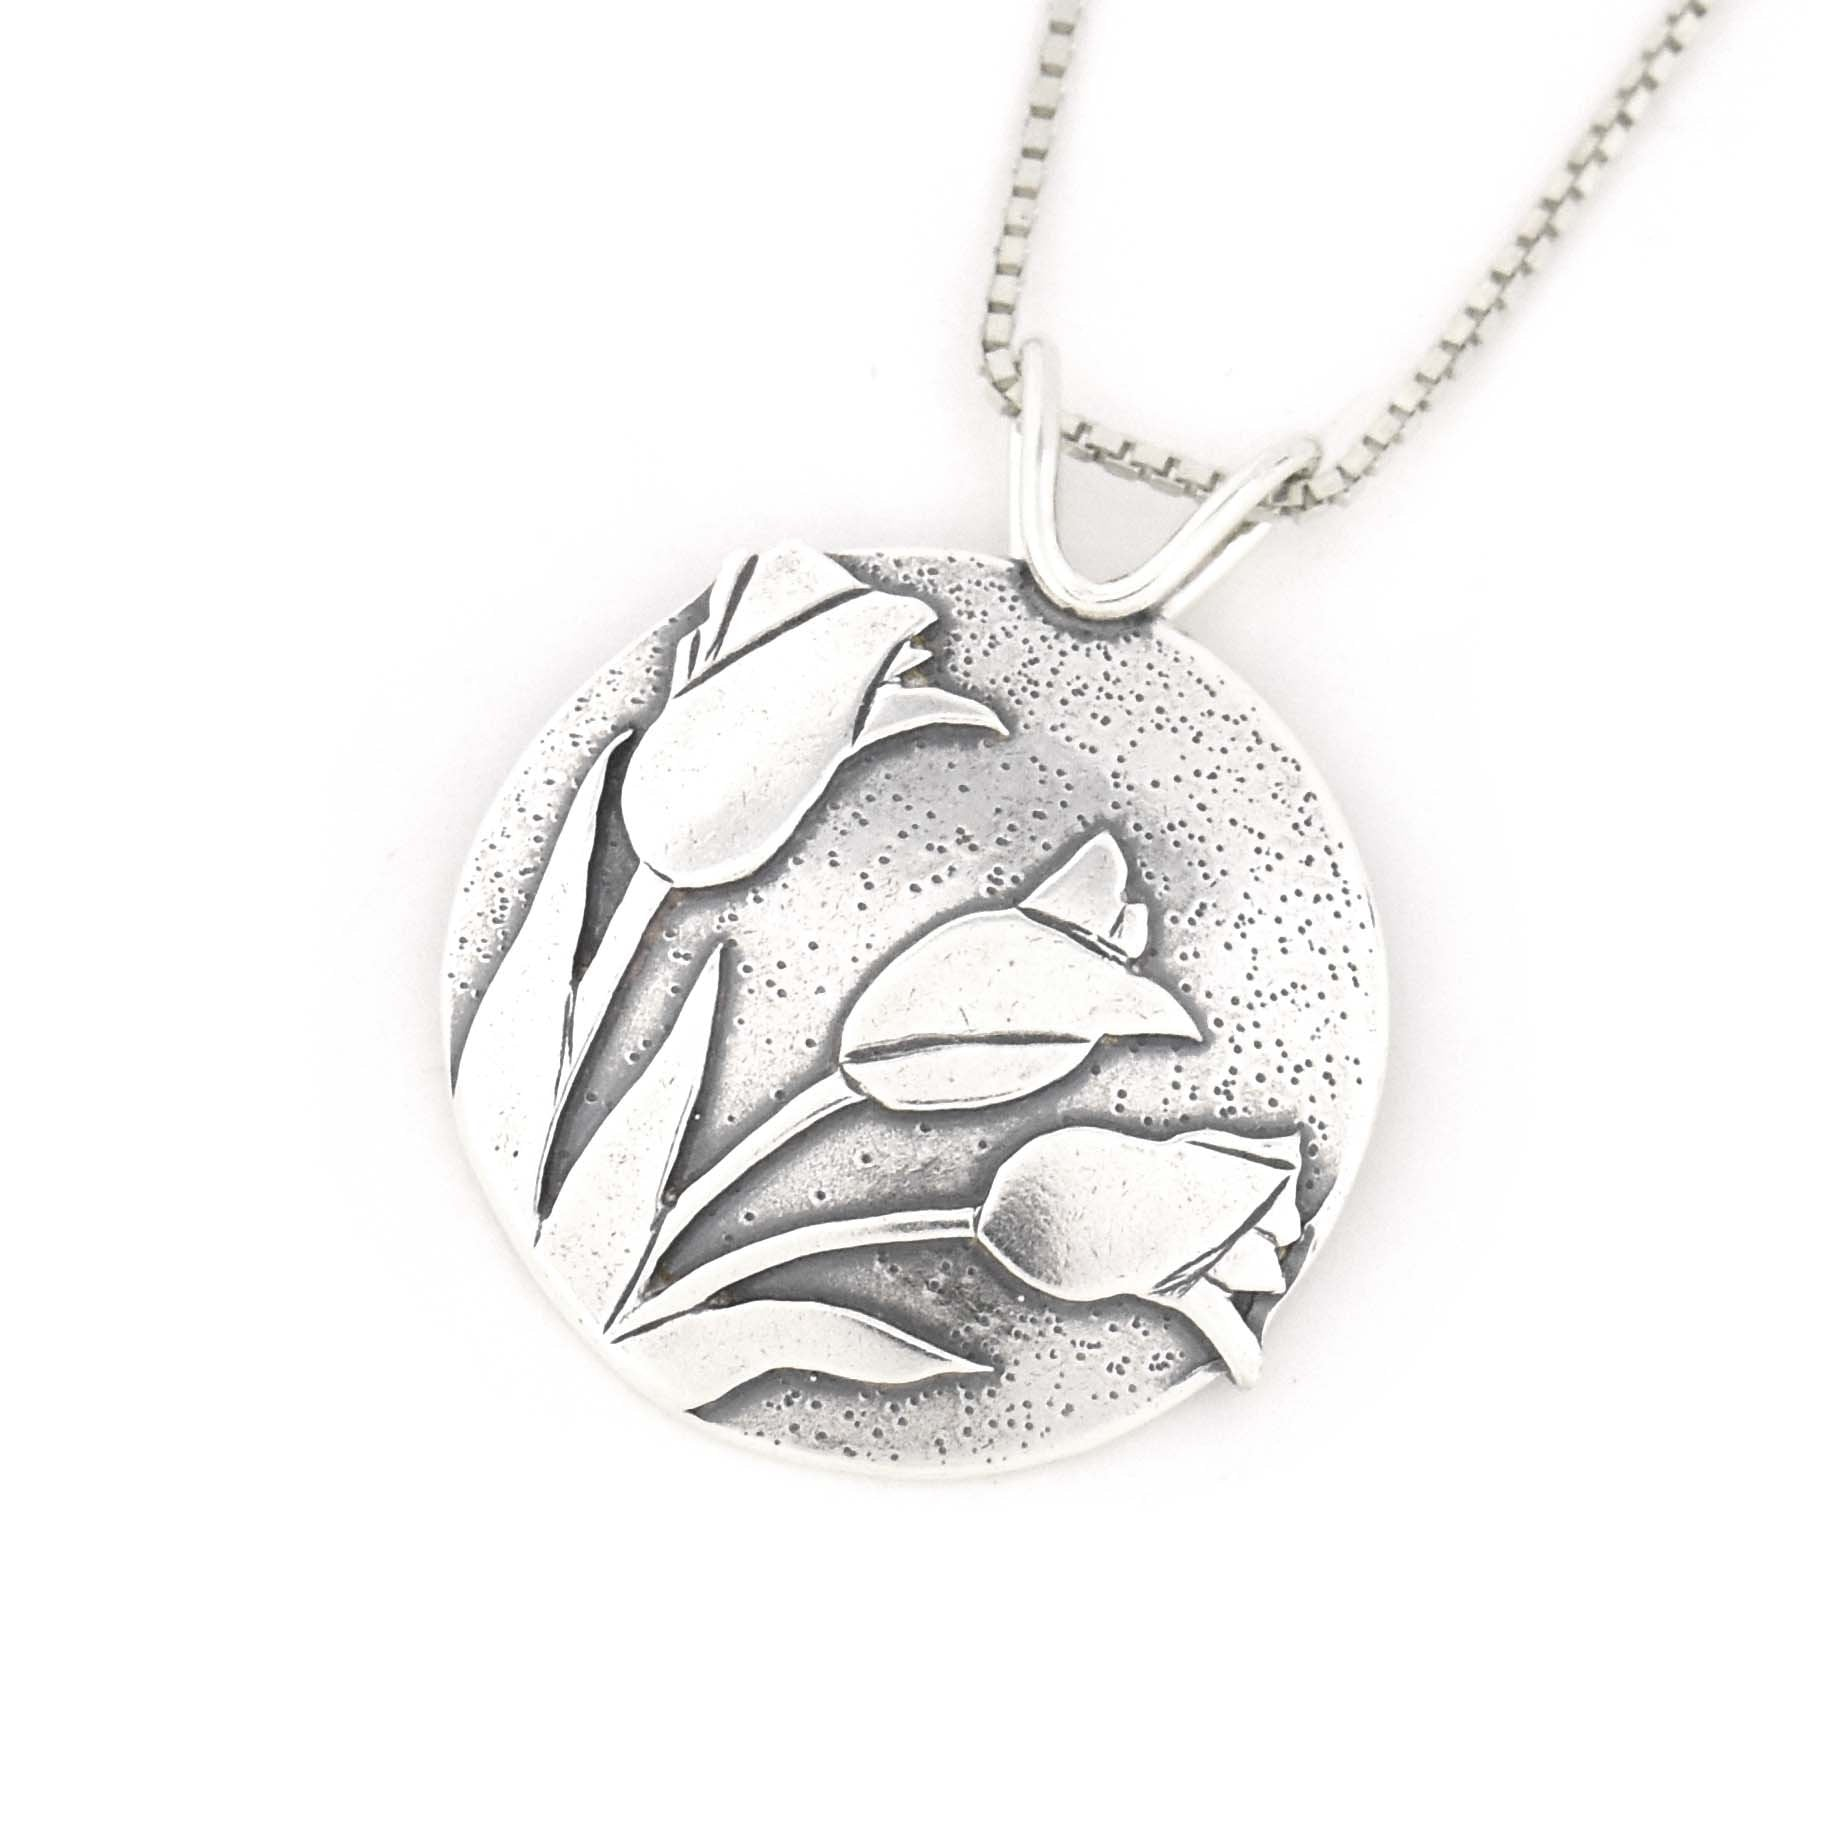 Spring Tulip Pendant, Silver Pendant handmade by Beth Millner Jewelry